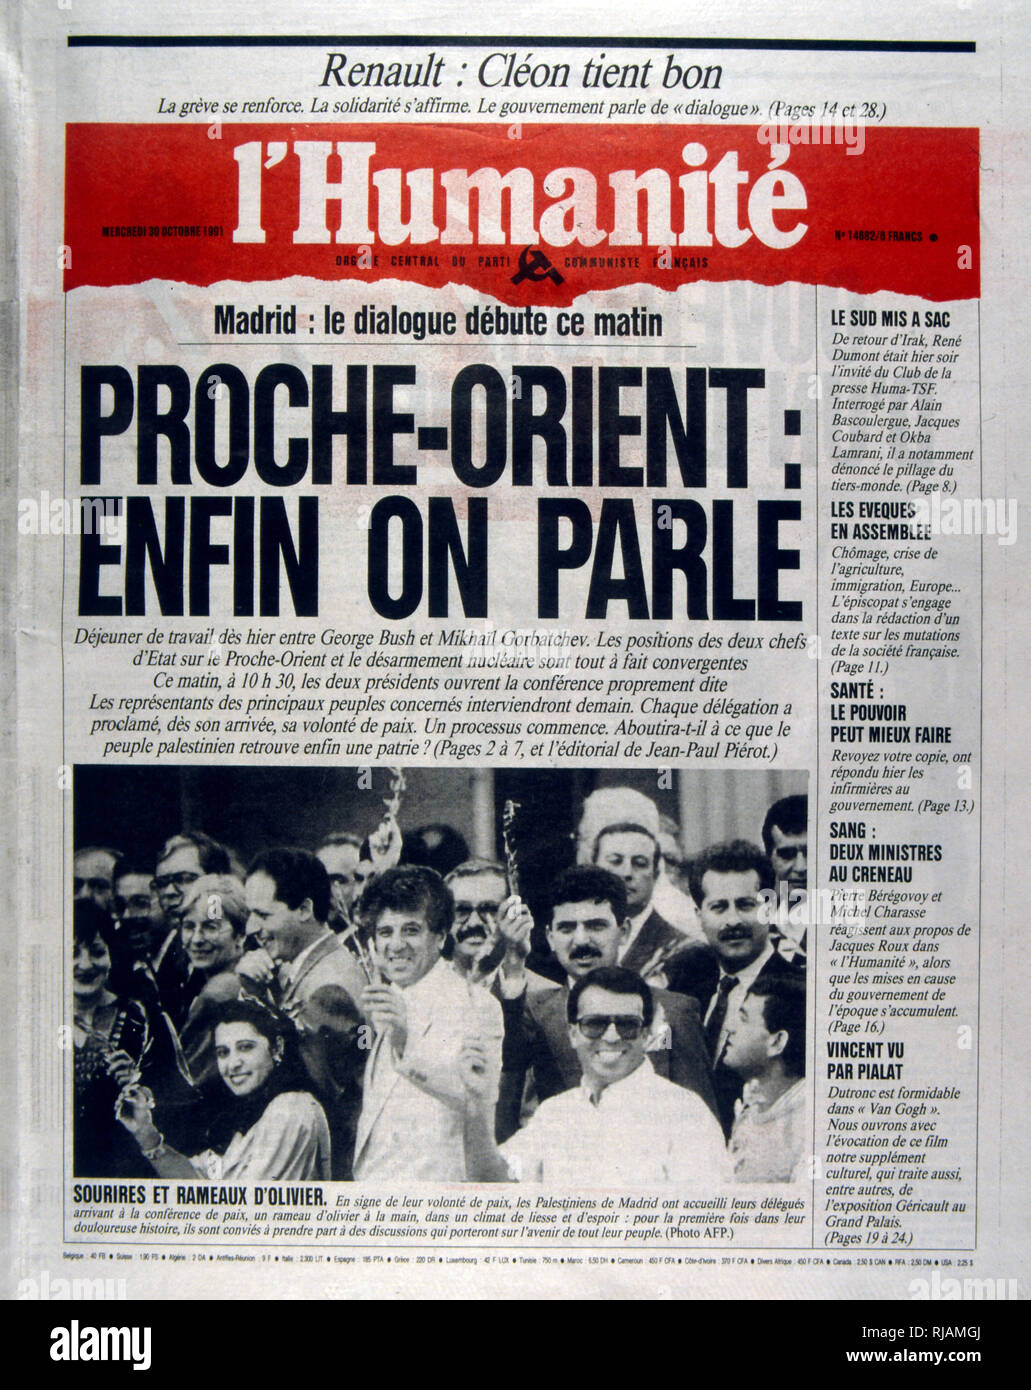 Front Page of the French publication 'L'Humanite' reporting on the Madrid Conference;  a peace conference, held from 30 October to 1 November 1991 in Madrid, hosted by Spain and co-sponsored by the United States and the Soviet Union. It was an attempt by the international community to revive the Israeli-Palestinian peace process through negotiations, involving Israel and the Palestinians as well as Arab countries, including Jordan, Lebanon and Syria. - Stock Image